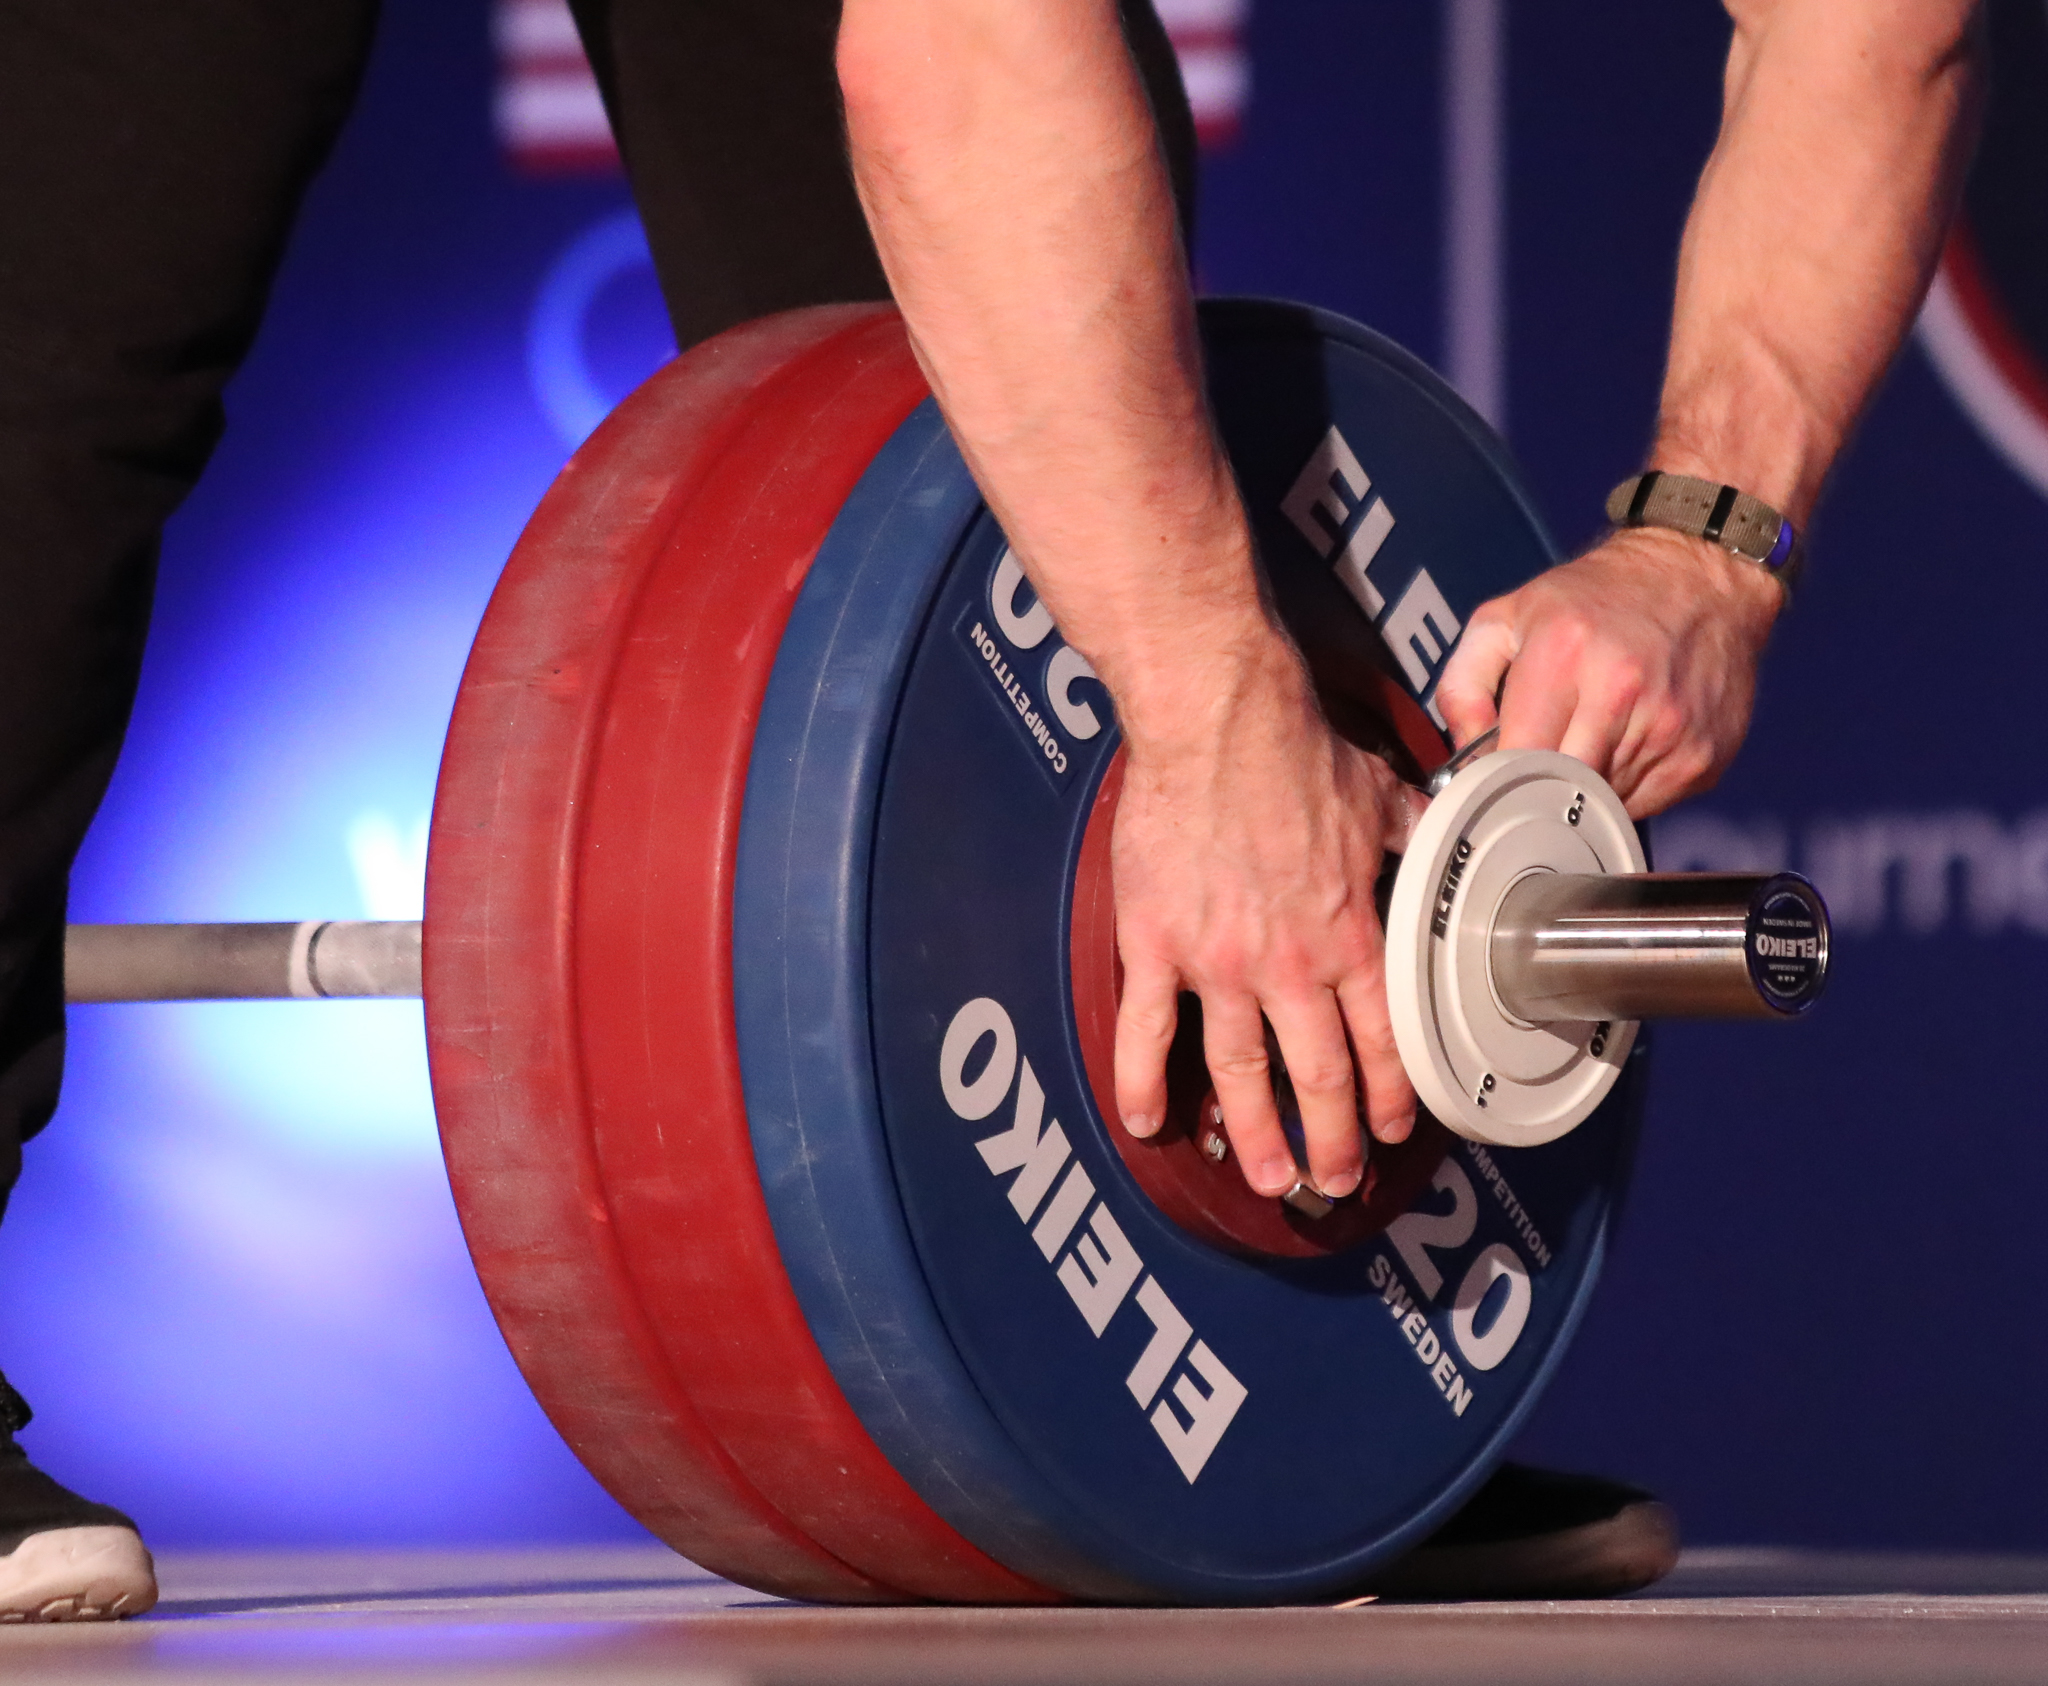 Eleiko Equipment used on the competition platforms.